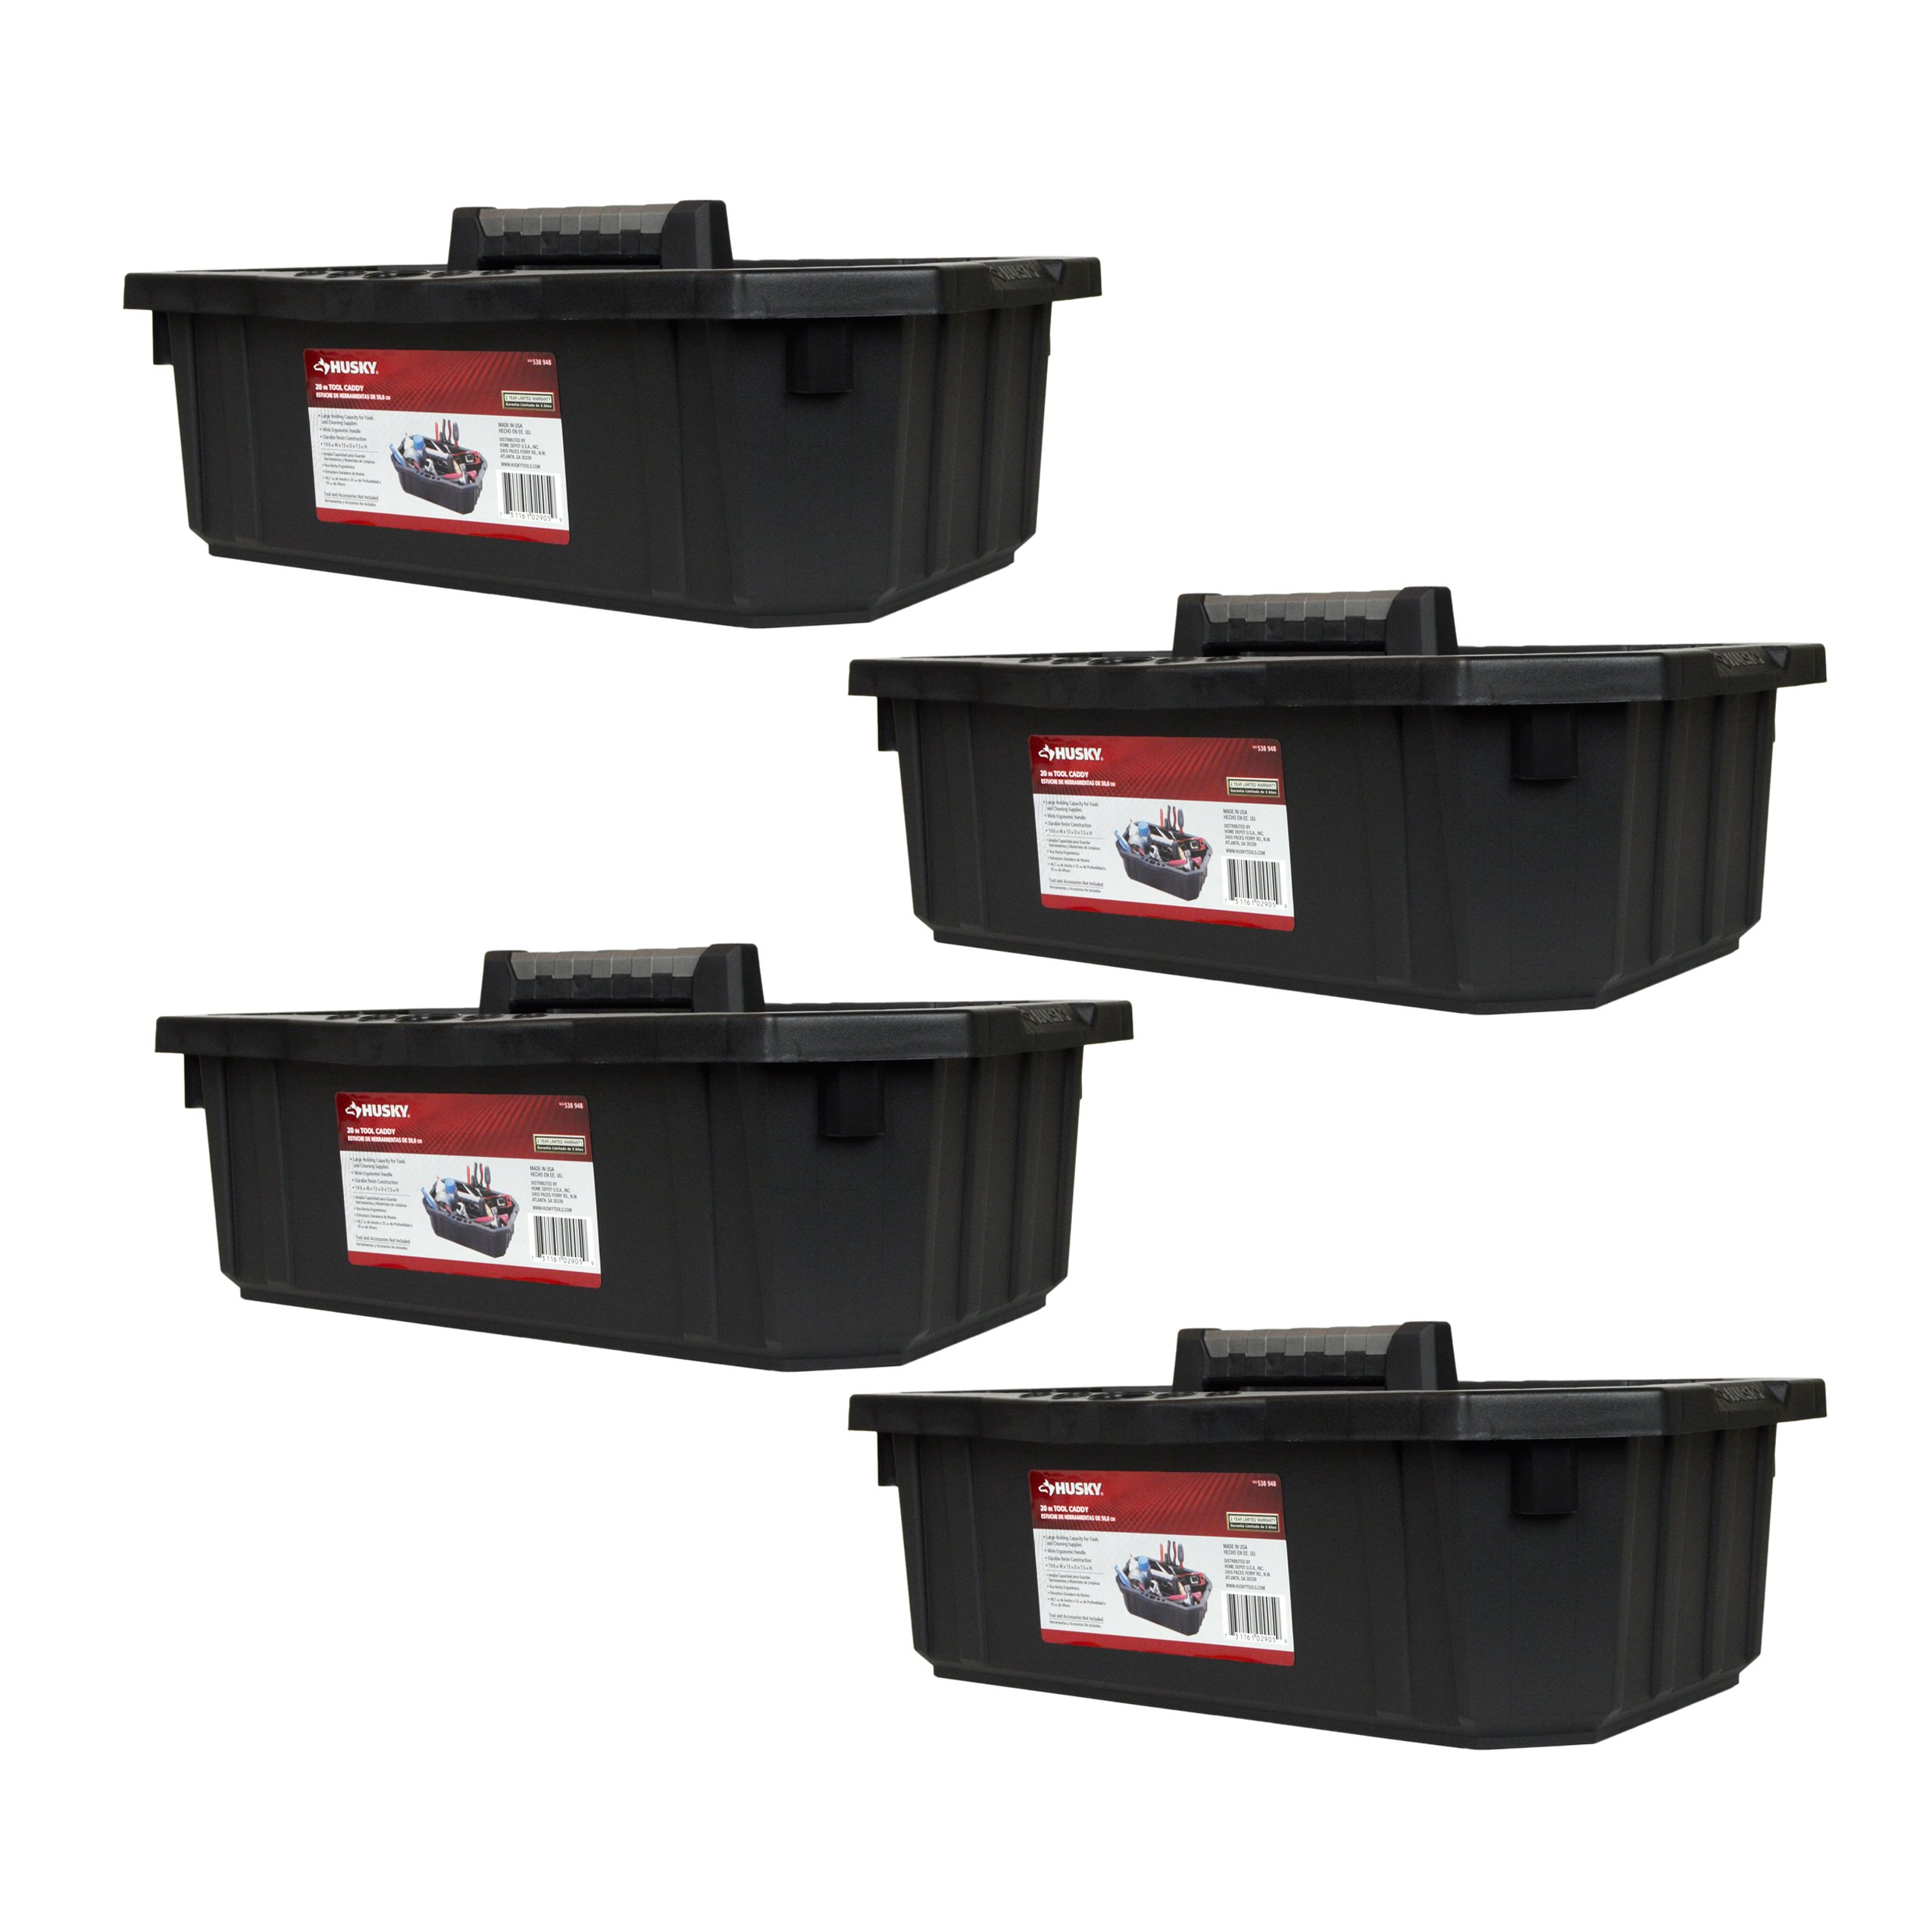 Husky 19.6'' x 3'' x 7.5'' Single Compartment Tool Organizer Caddy - 4 Pack